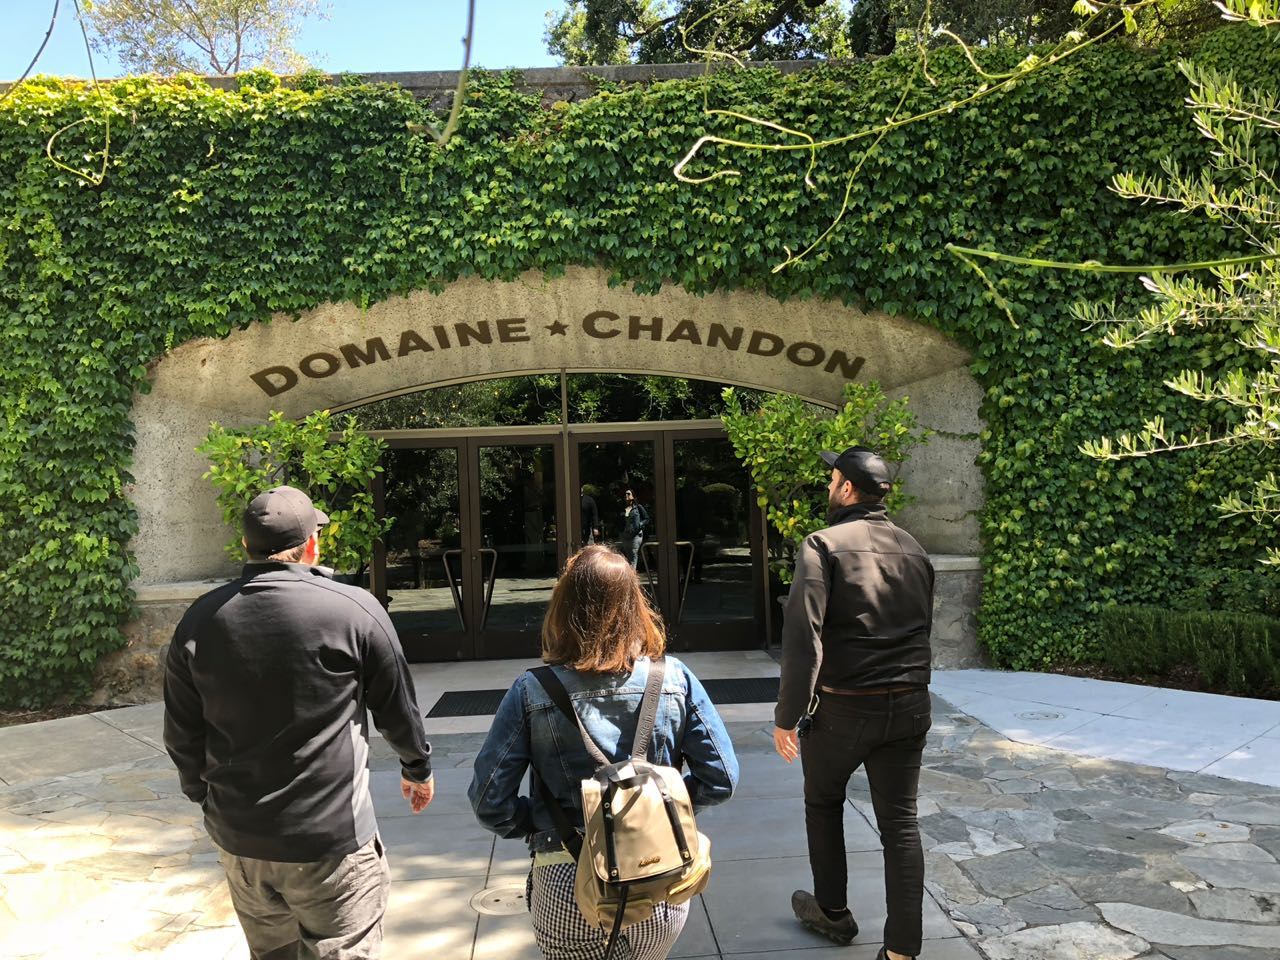 Domaine Chandon (DC), part of the Moet & Chandon group, also has a winery in India